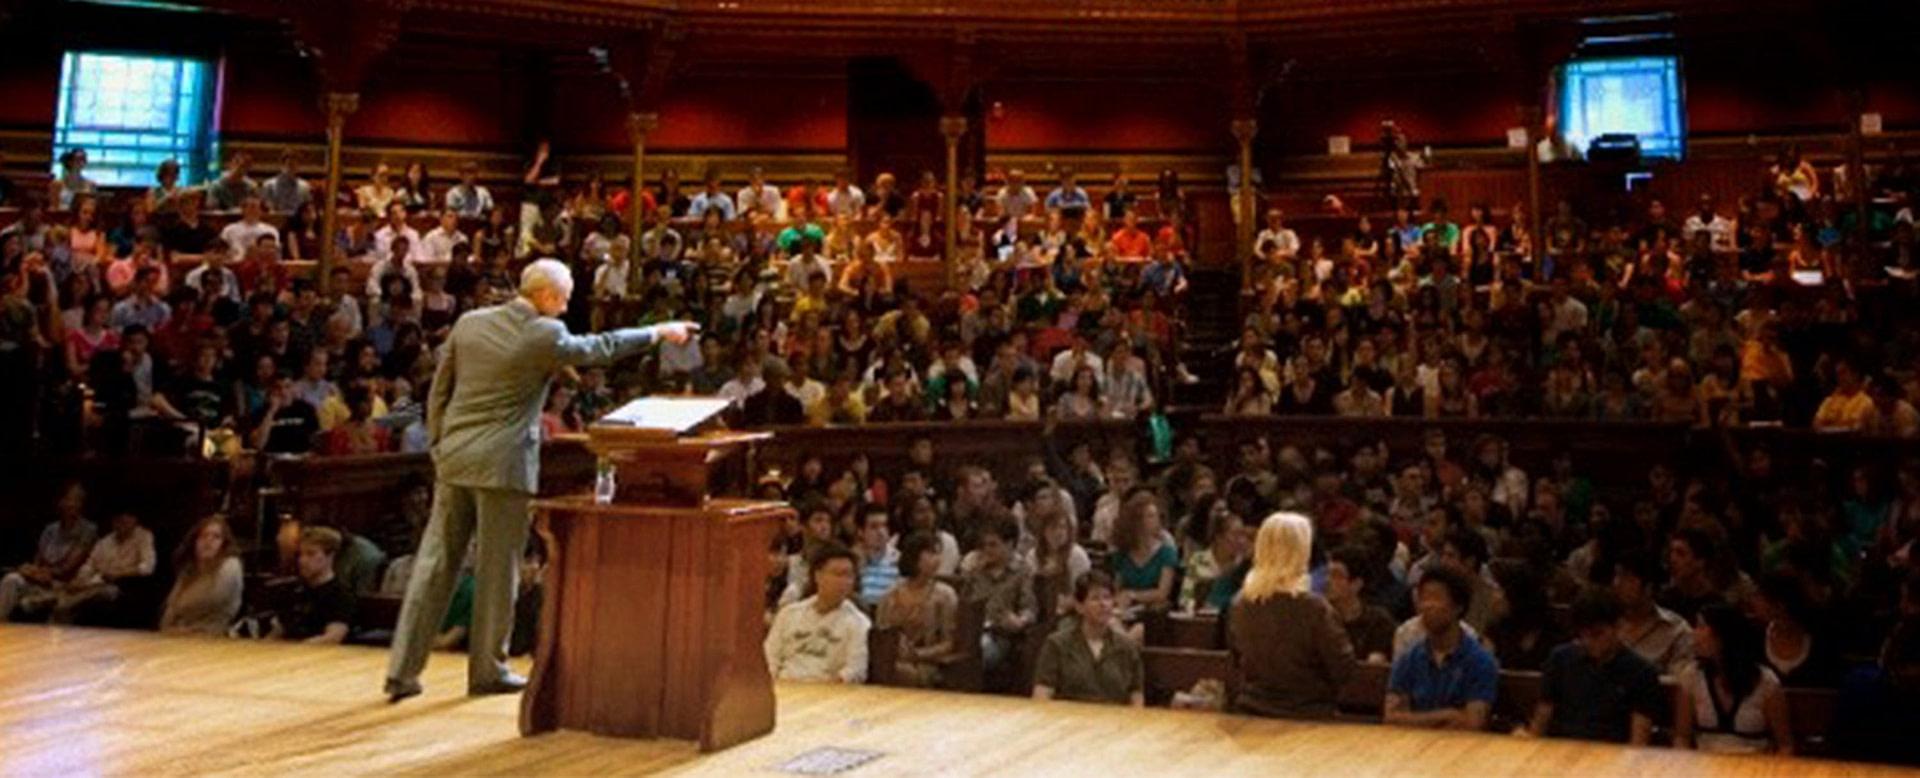 How to Engage Students and Support Learning in Large Classes – Teaching in Higher Ed